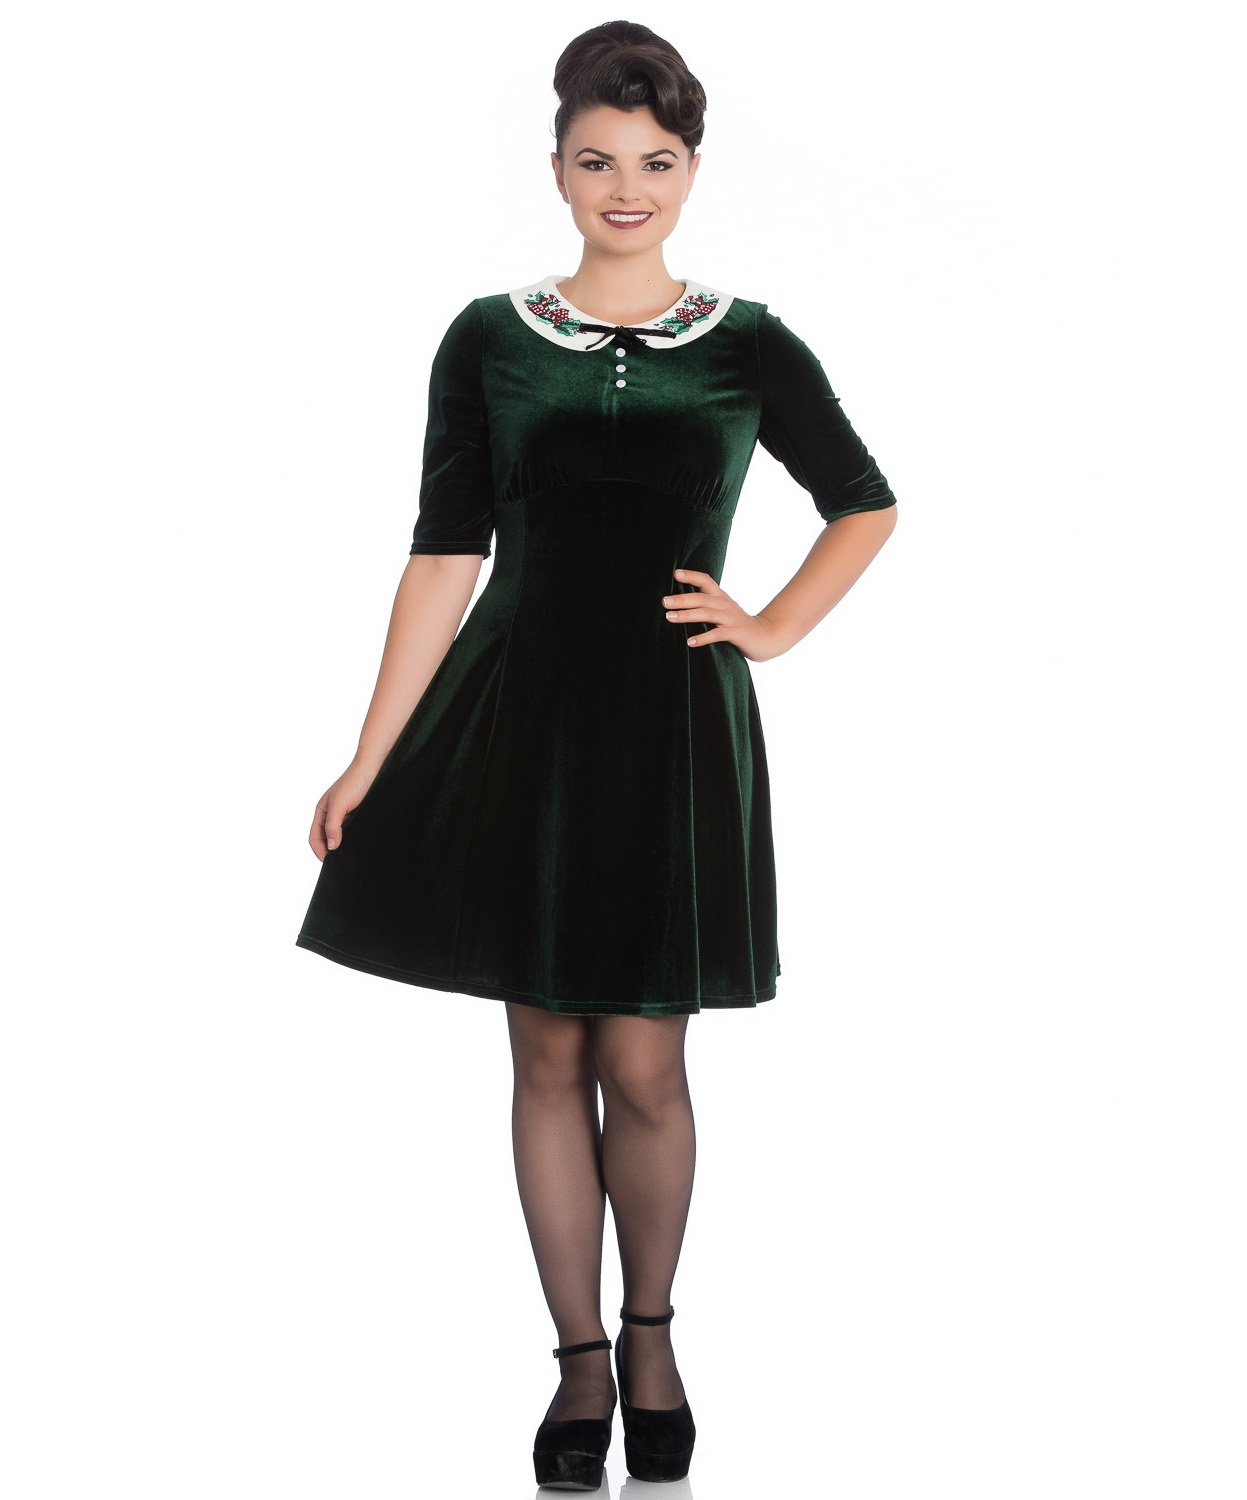 Hell-Bunny-Mini-Skater-Dress-Festive-Christmas-MERRILY-Green-Velvet-All-Sizes thumbnail 3